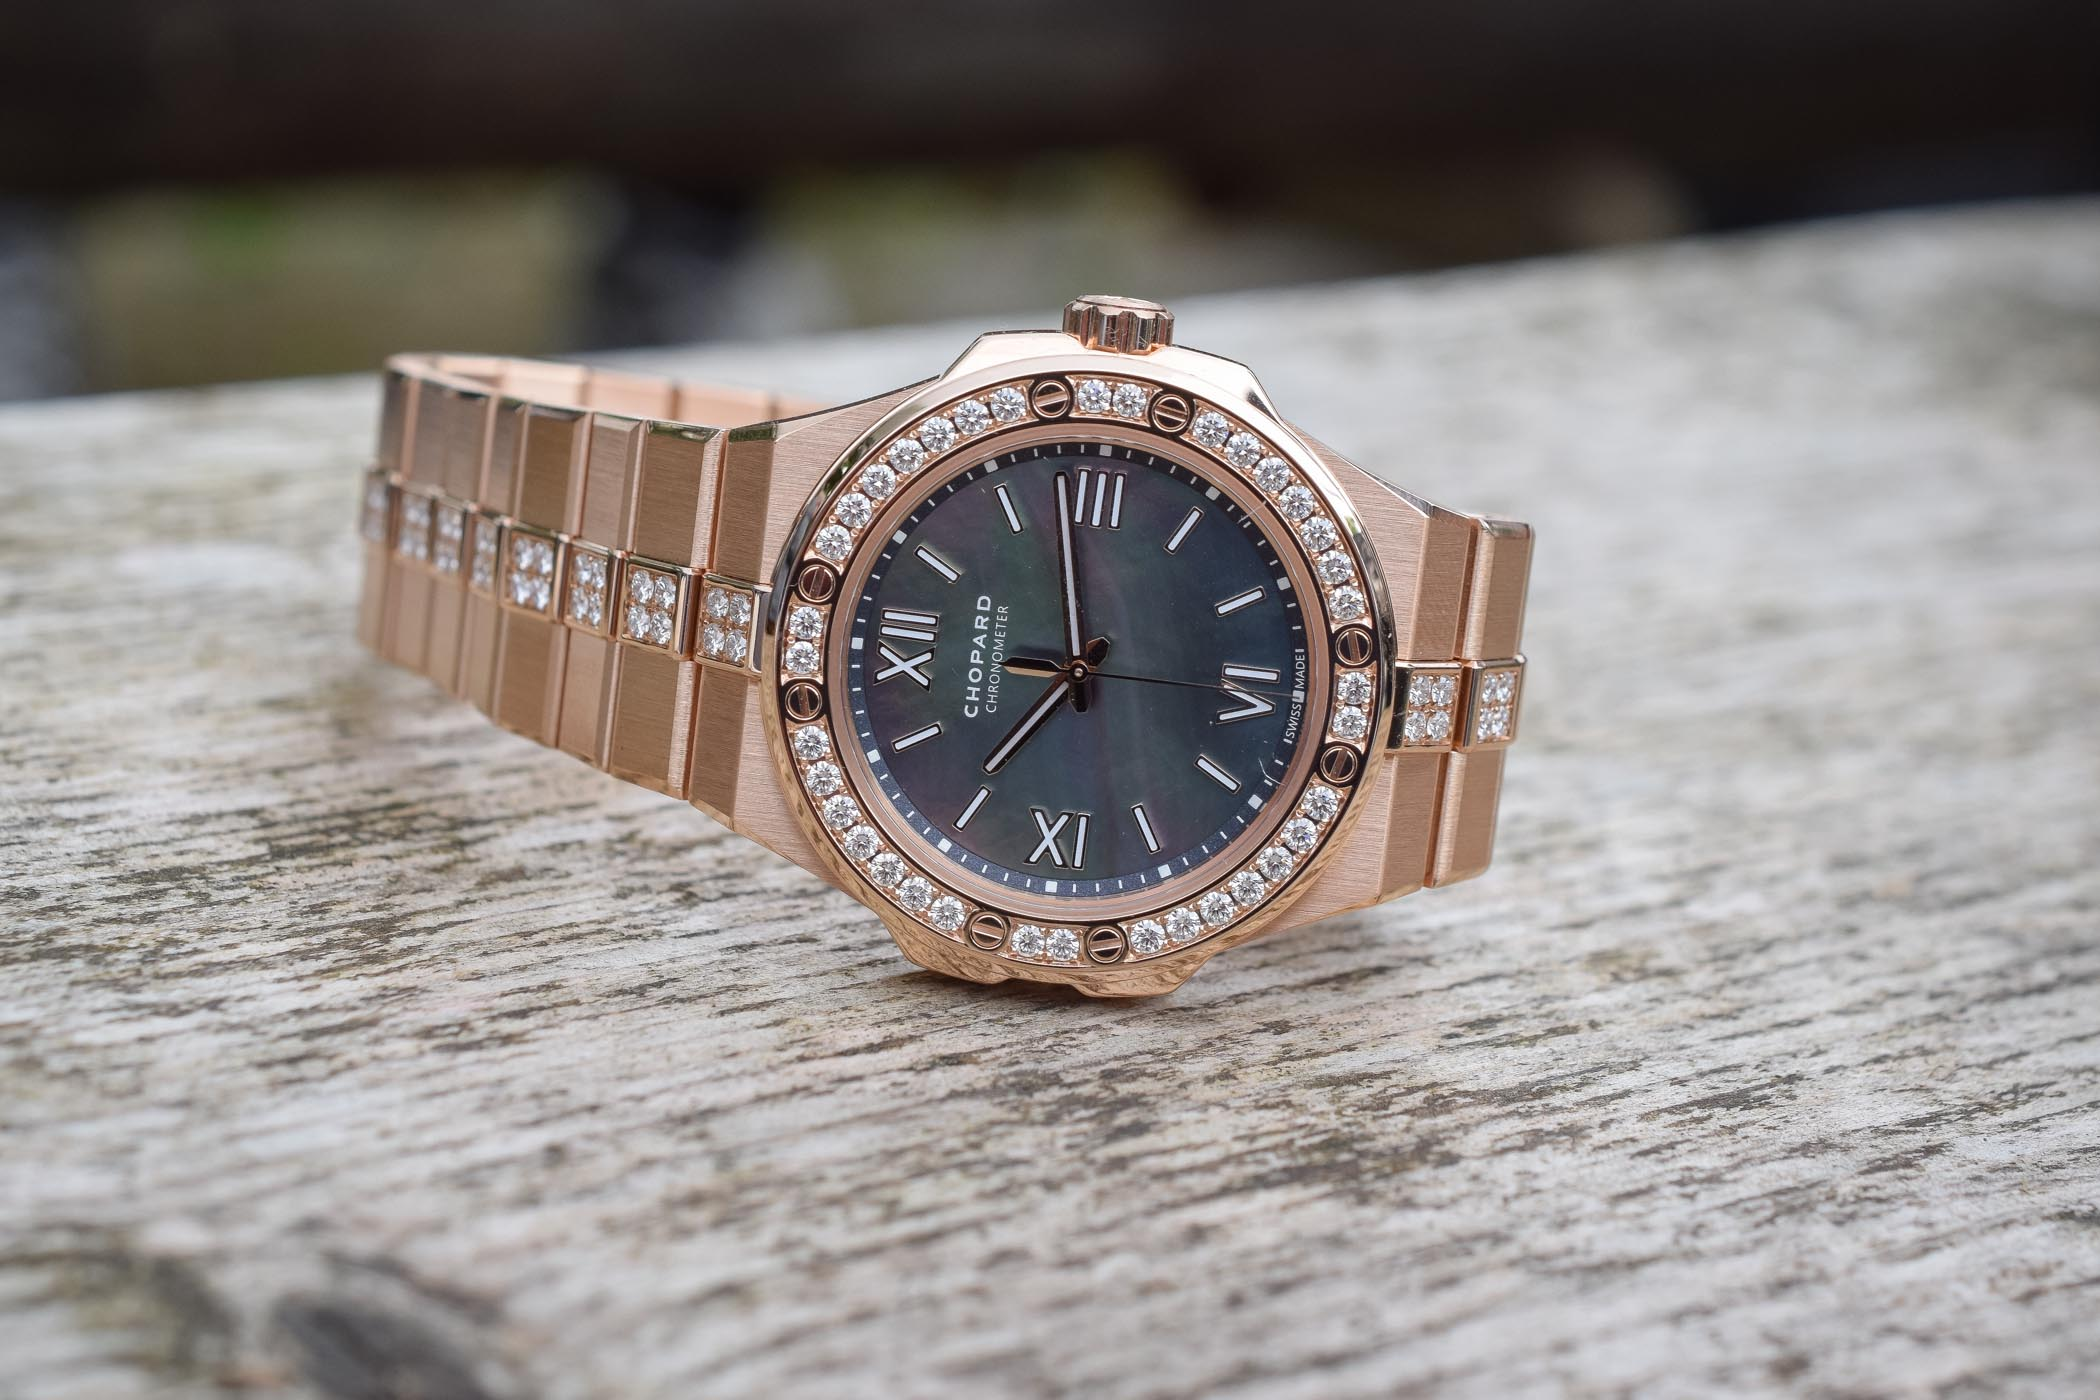 Chopard Alpine Eagle 36mm - Luxury Sports Watch Collection - Review - 3